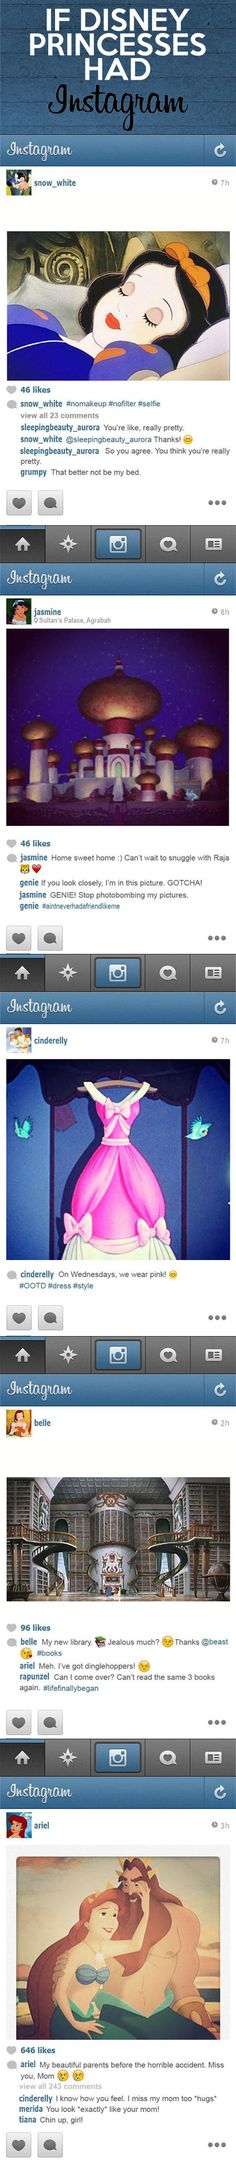 If Disney princesses had Instagram… @Hannah Woodruff @Samantha LeBlanc